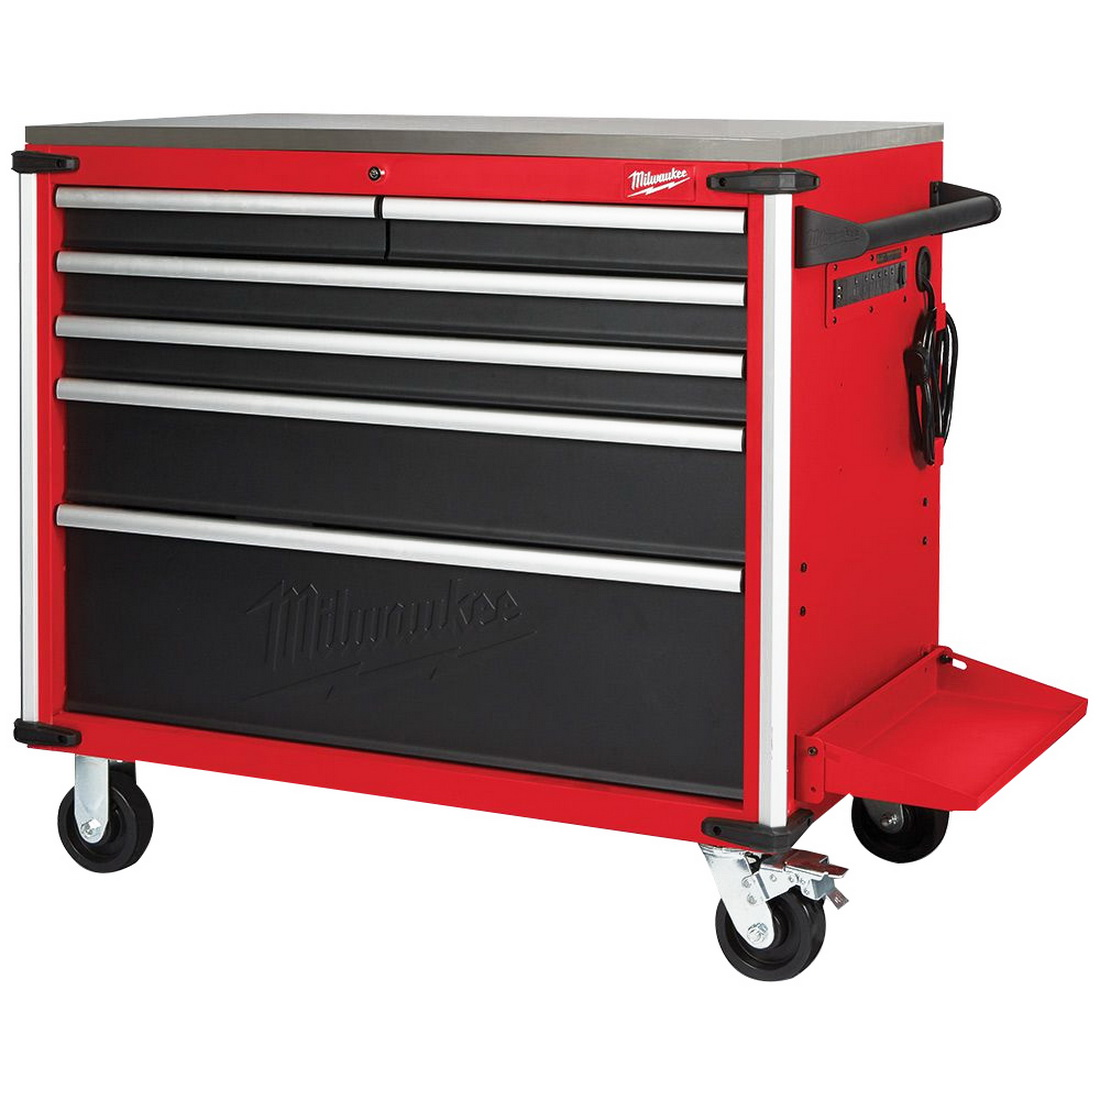 Mobile Work Bench Steel Top 40 inch